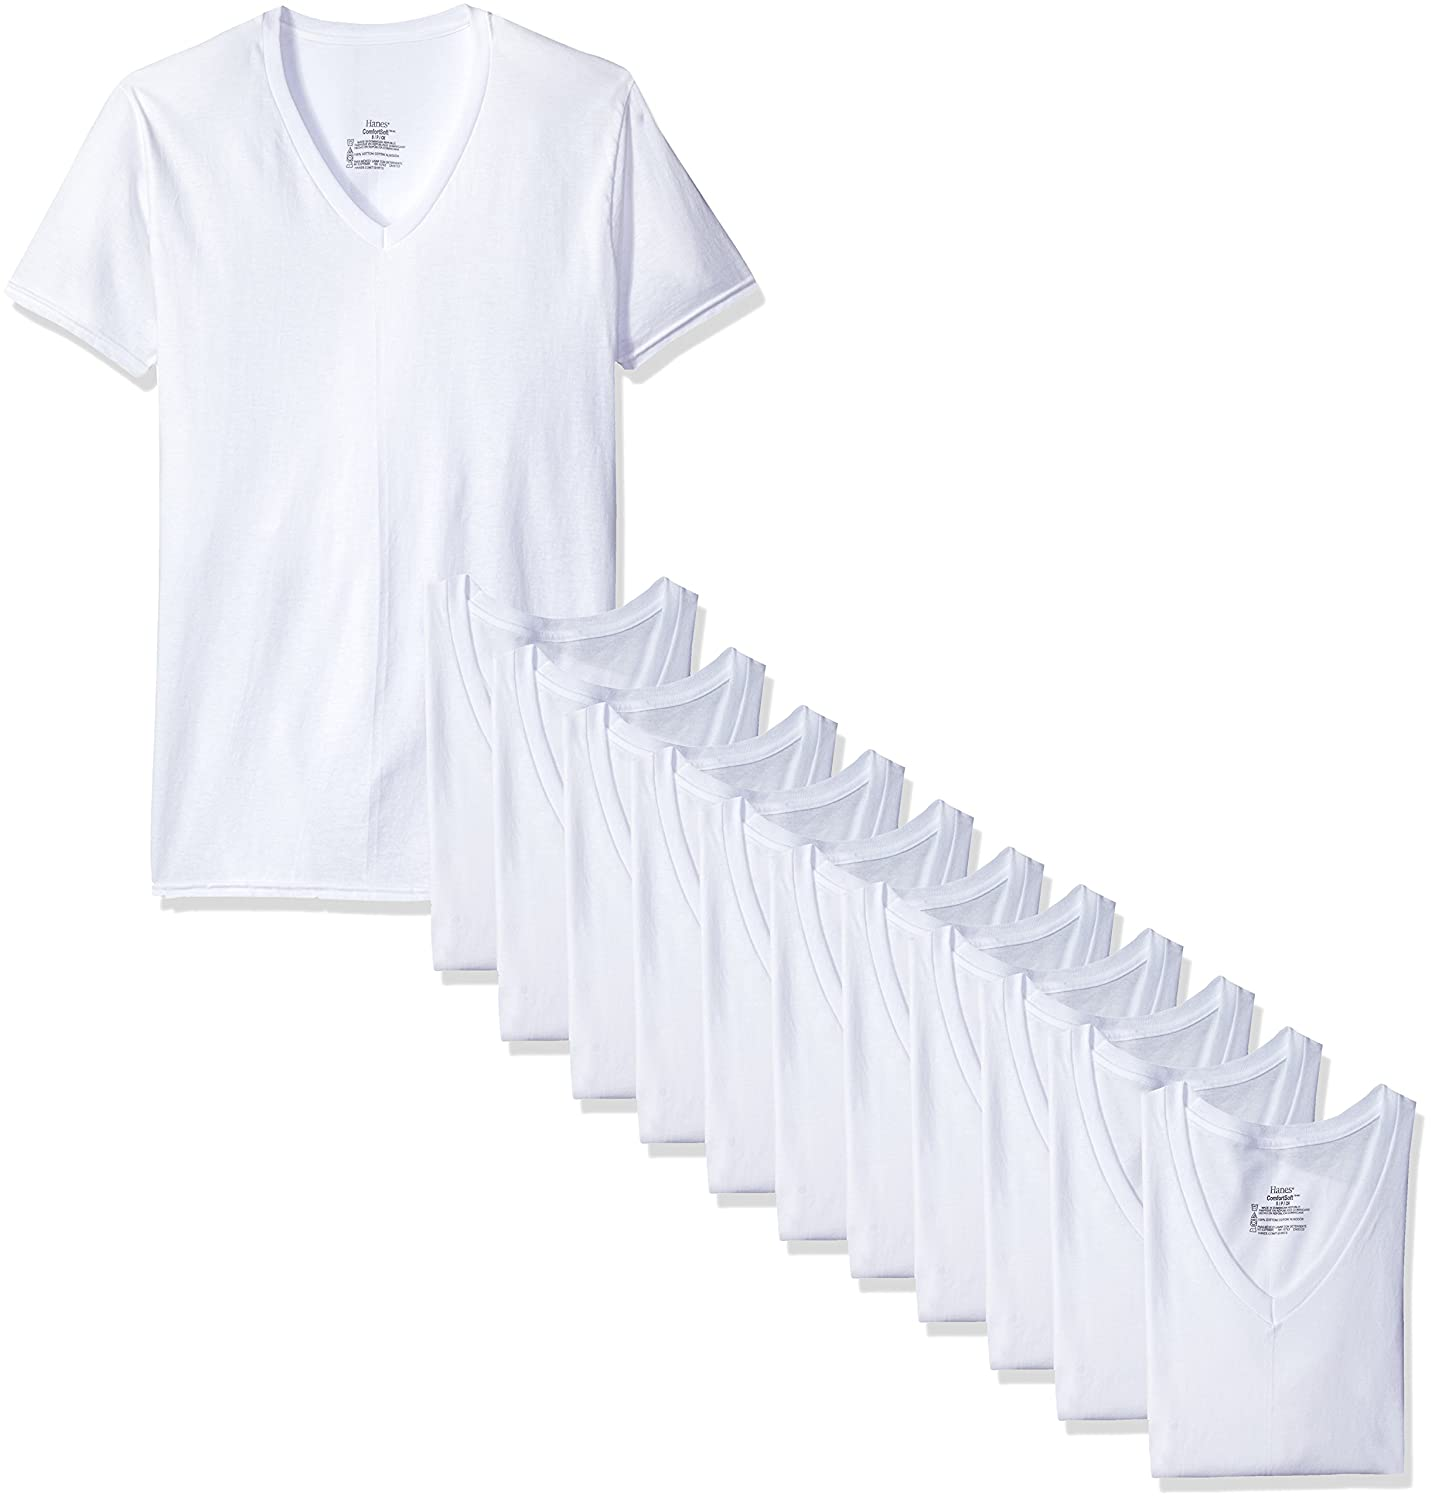 Hanes Men's White and Assorted V-Neck T-Shirts Hanes Men's Underwear 777VP6